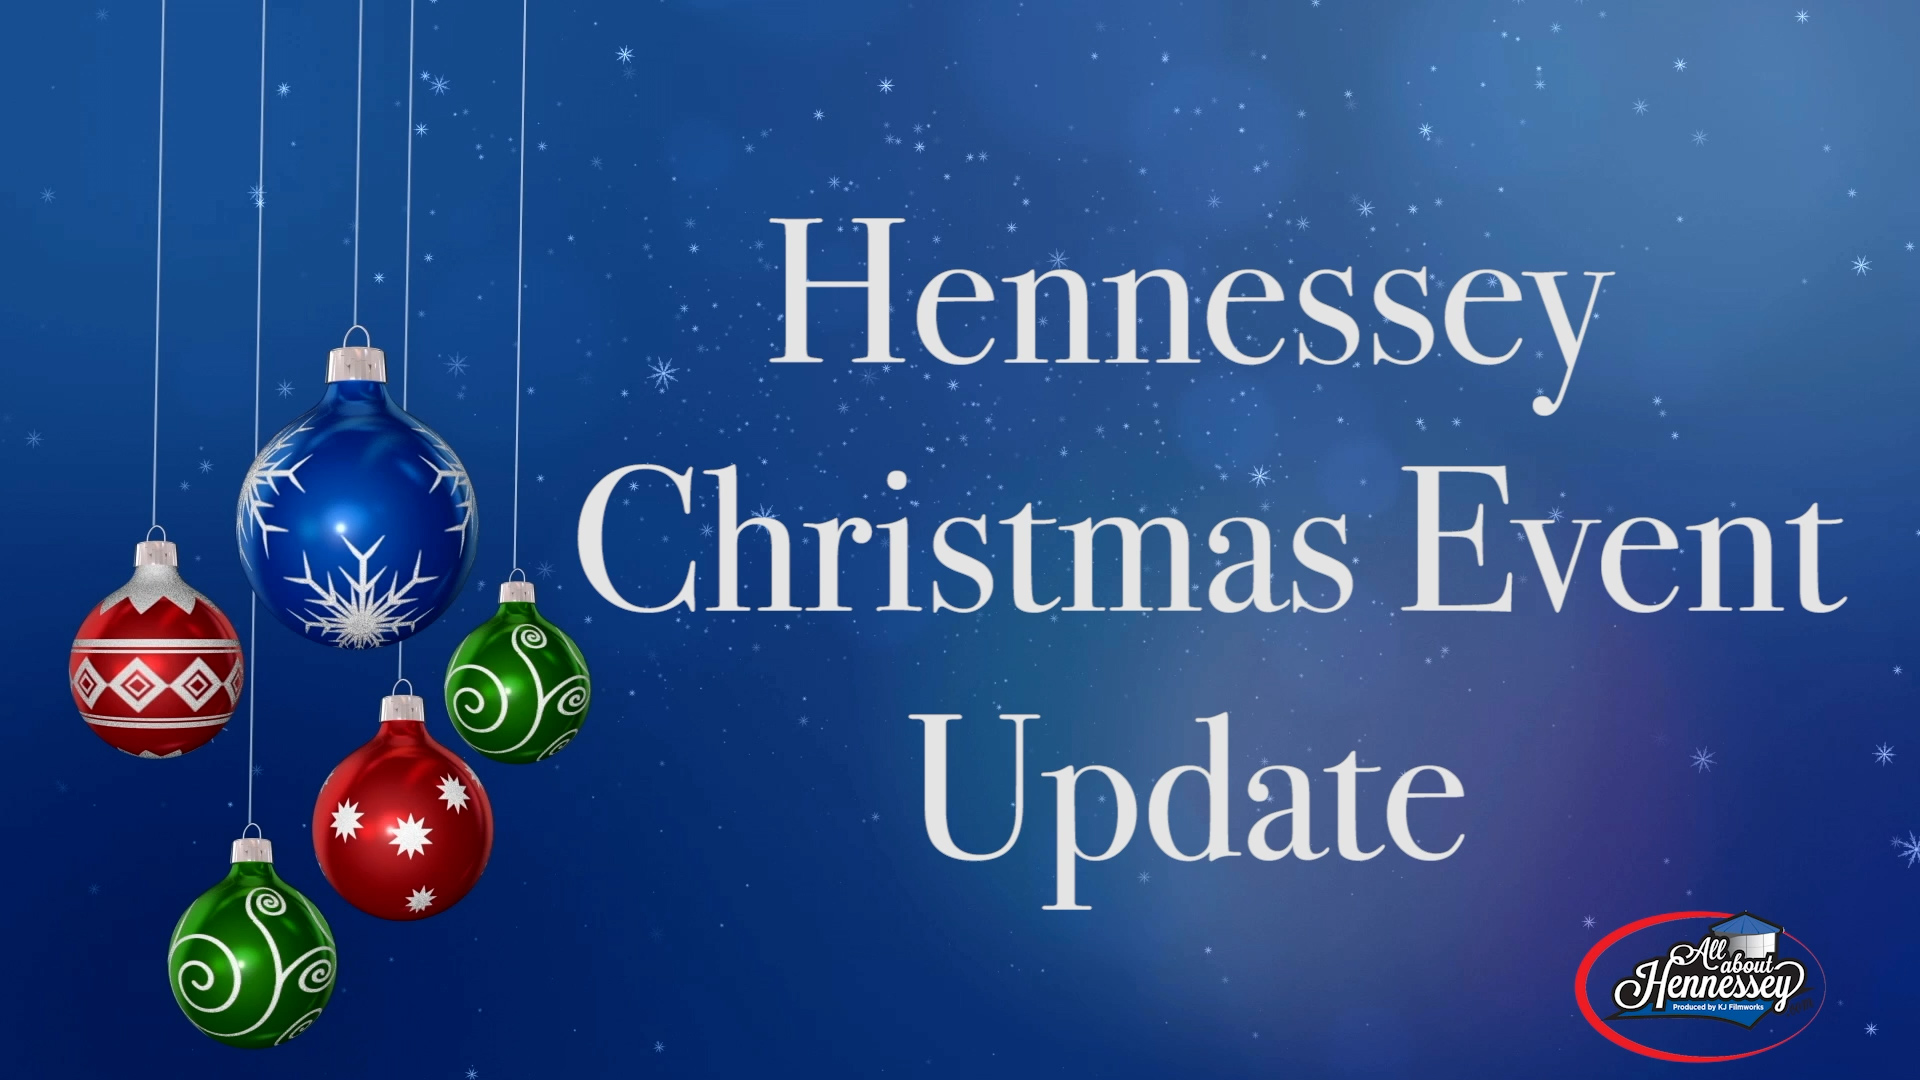 BIG CHANGES FOR HENNESSEY CHRISTMAS EVENTS